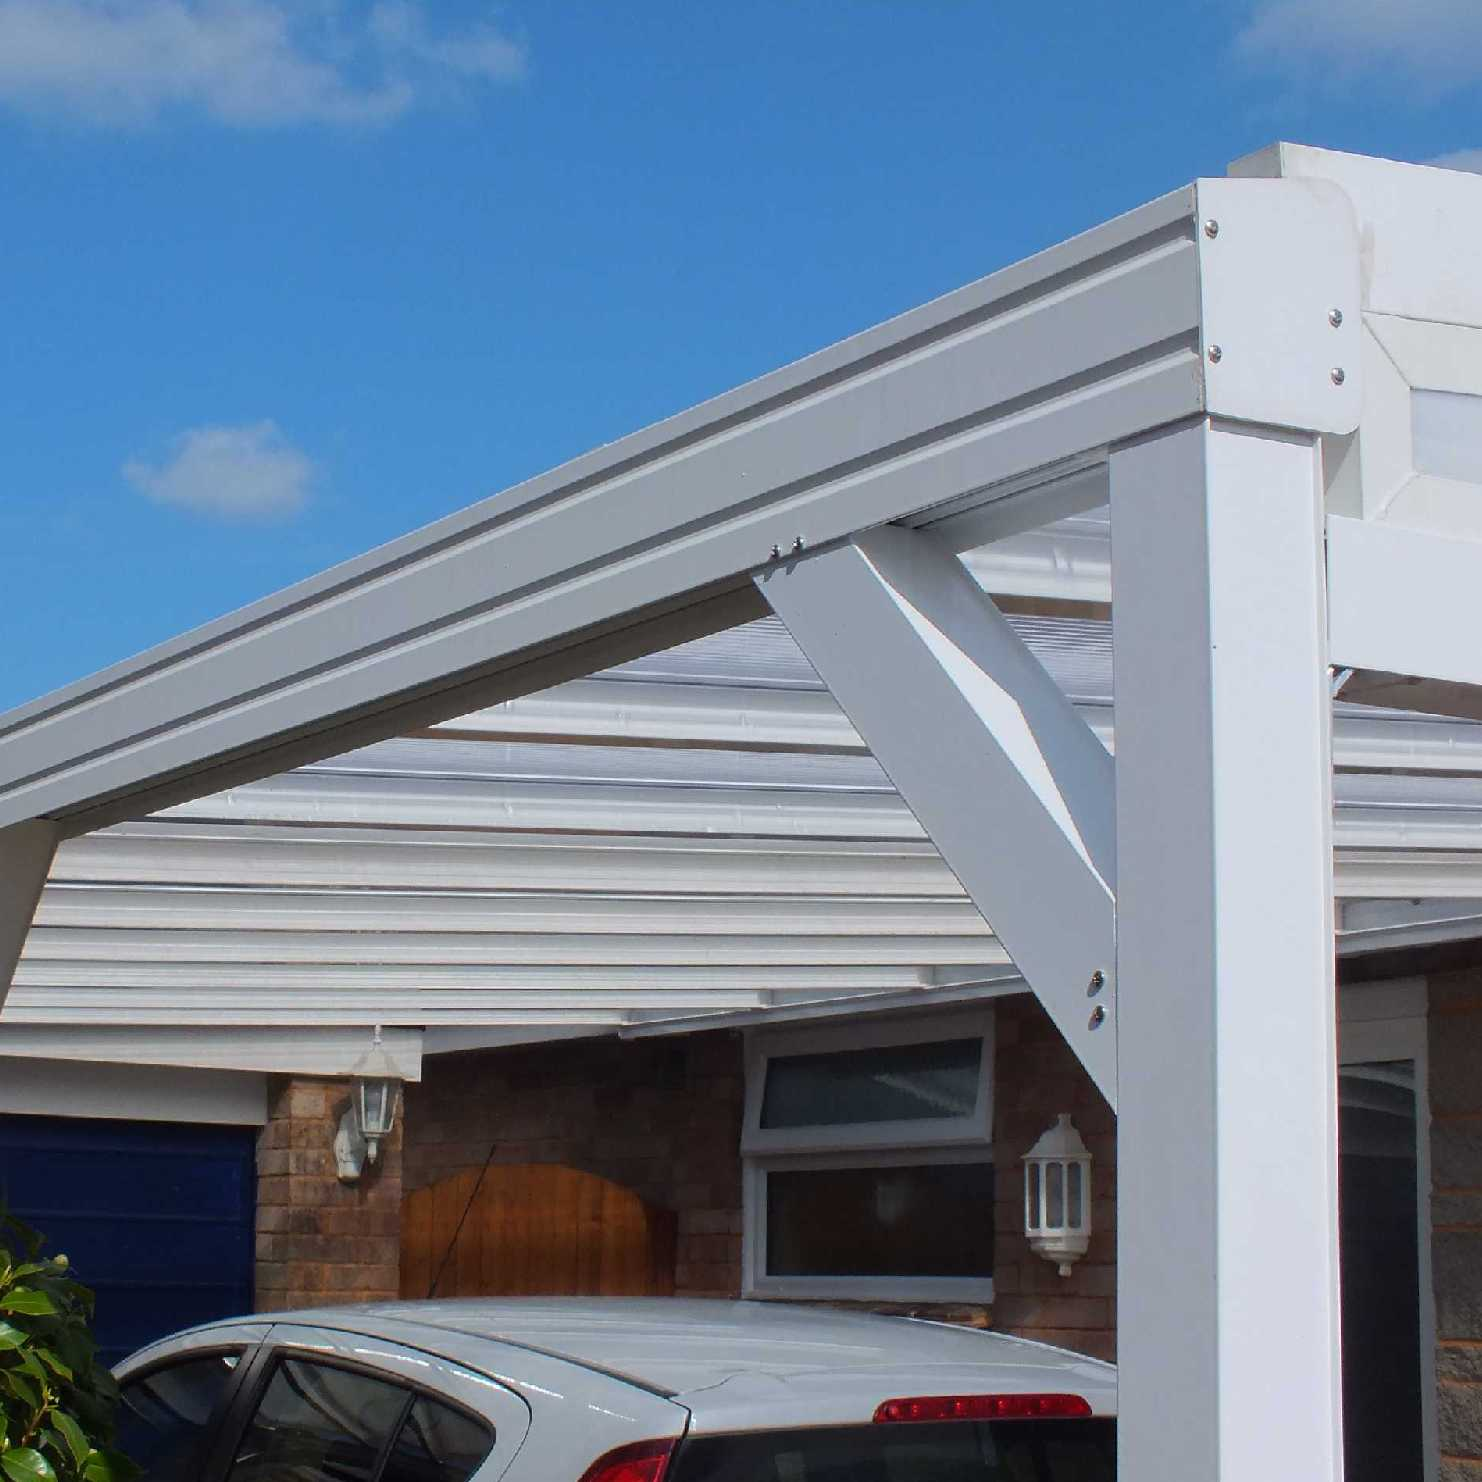 Buy Omega Smart White Lean-To Canopy with 16mm Polycarbonate Glazing - 11.6m (W) x 3.0m (P), (5) Supporting Posts online today